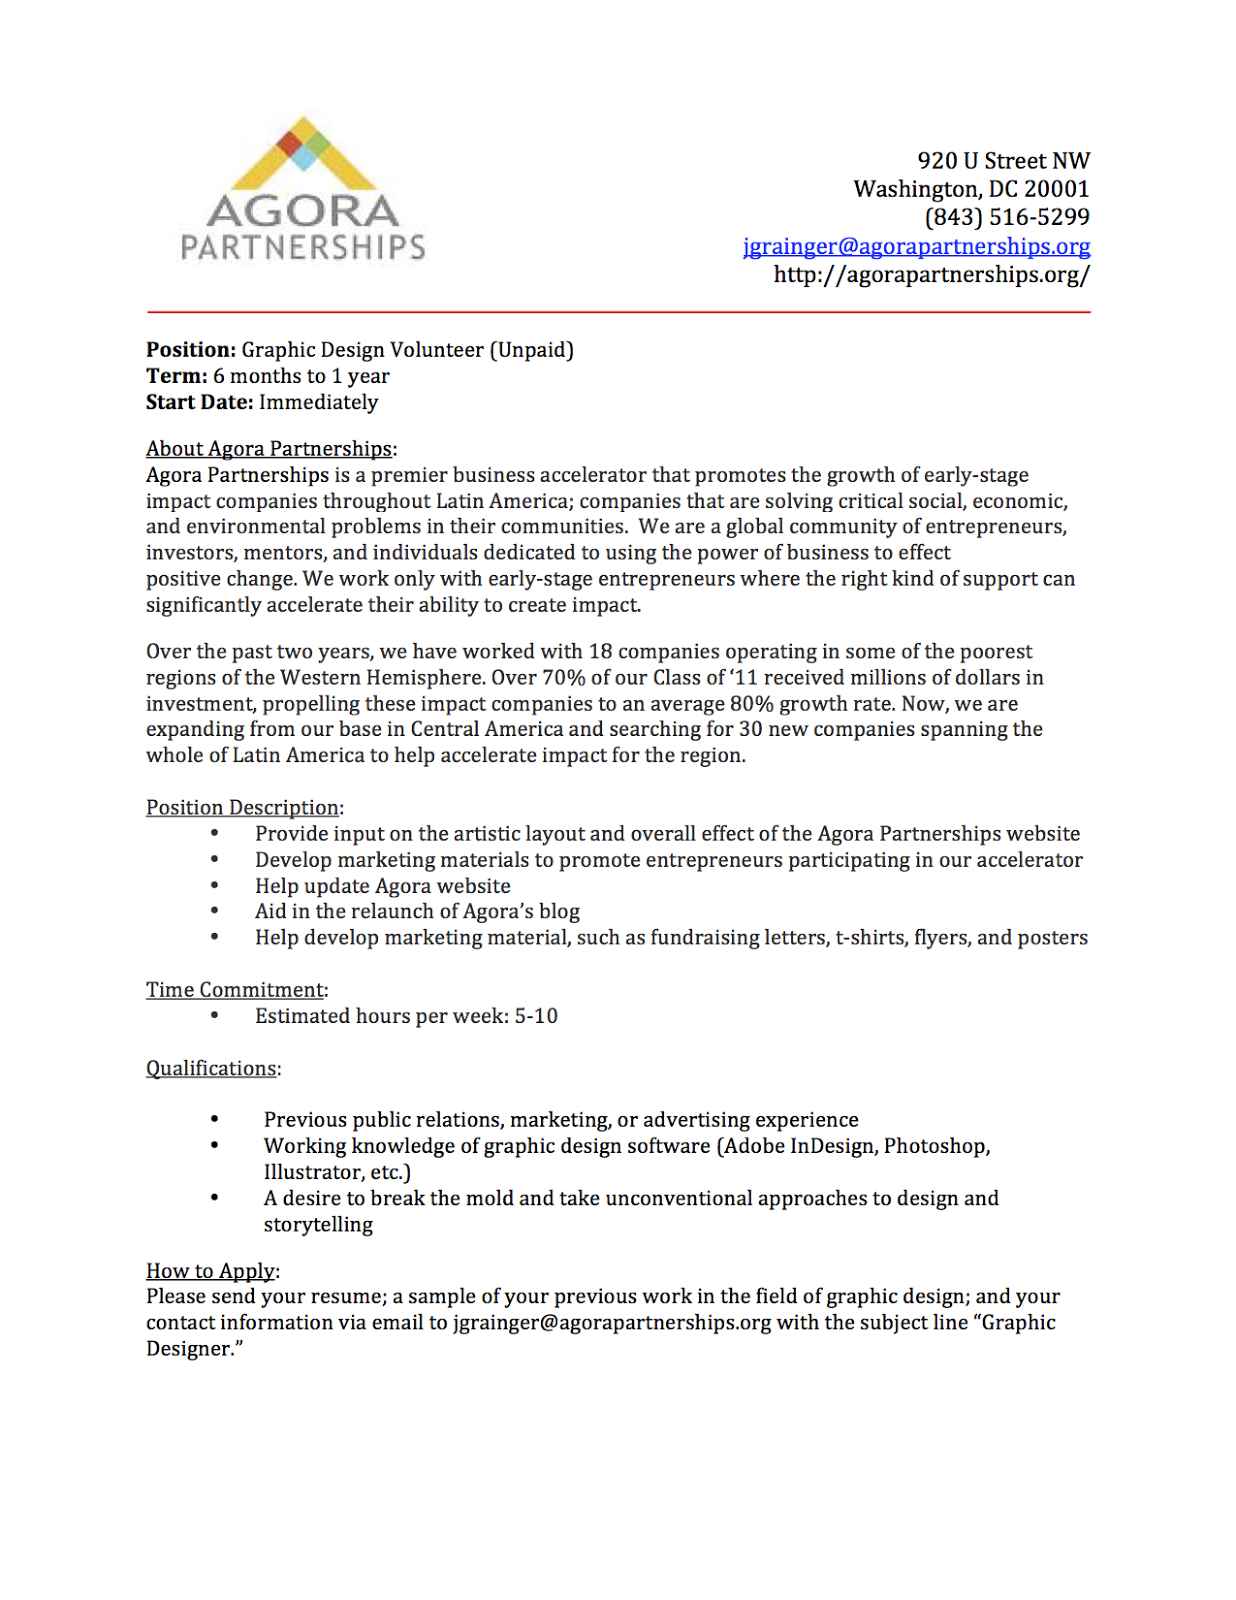 Graphic design cover letter no experience College paper Academic ...